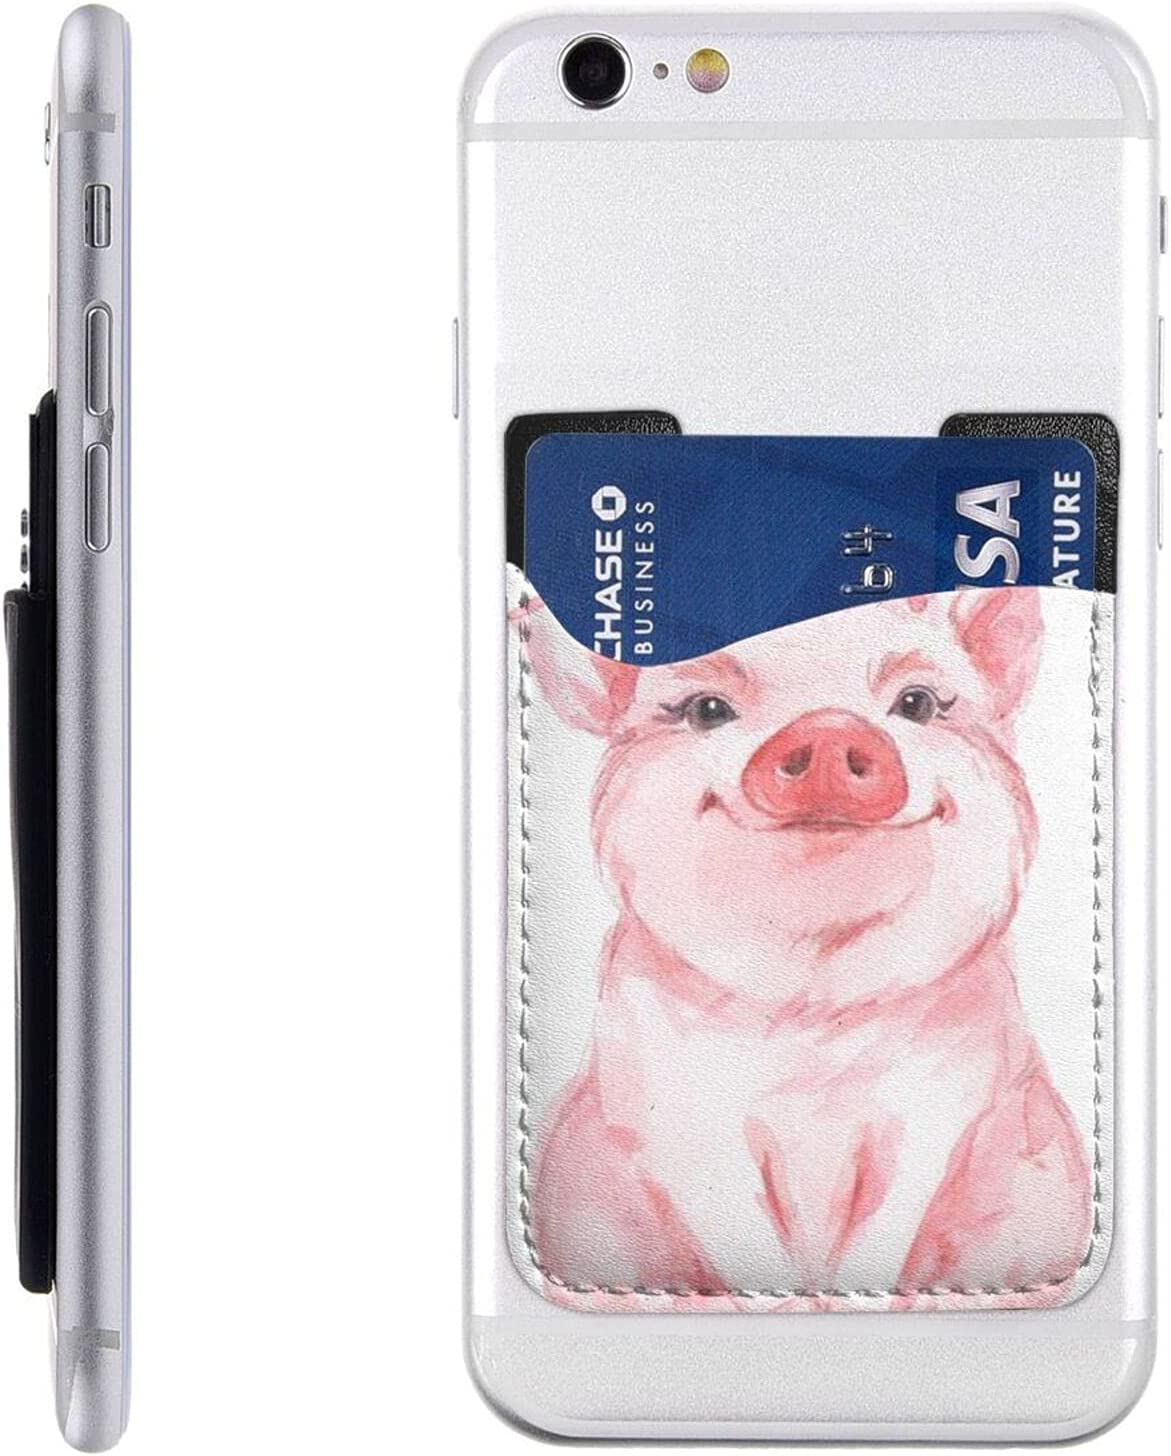 Lovely Pink Pig Phone Card Cell Holder OFFicial Stick On Daily bargain sale Walle